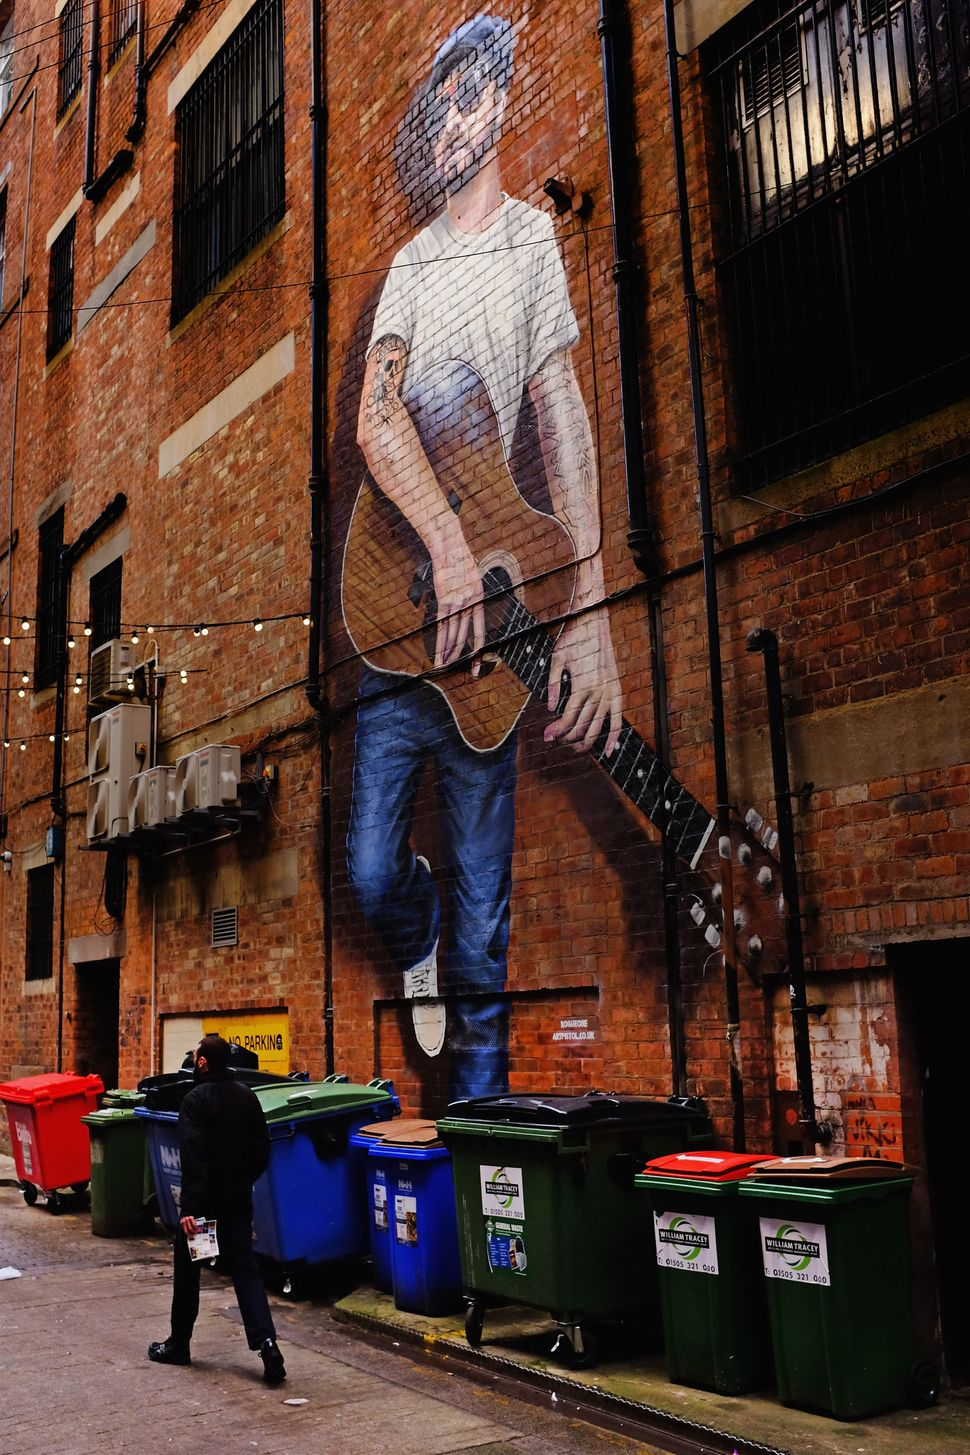 A man walks past a mural on Sauchiehall Street lane.